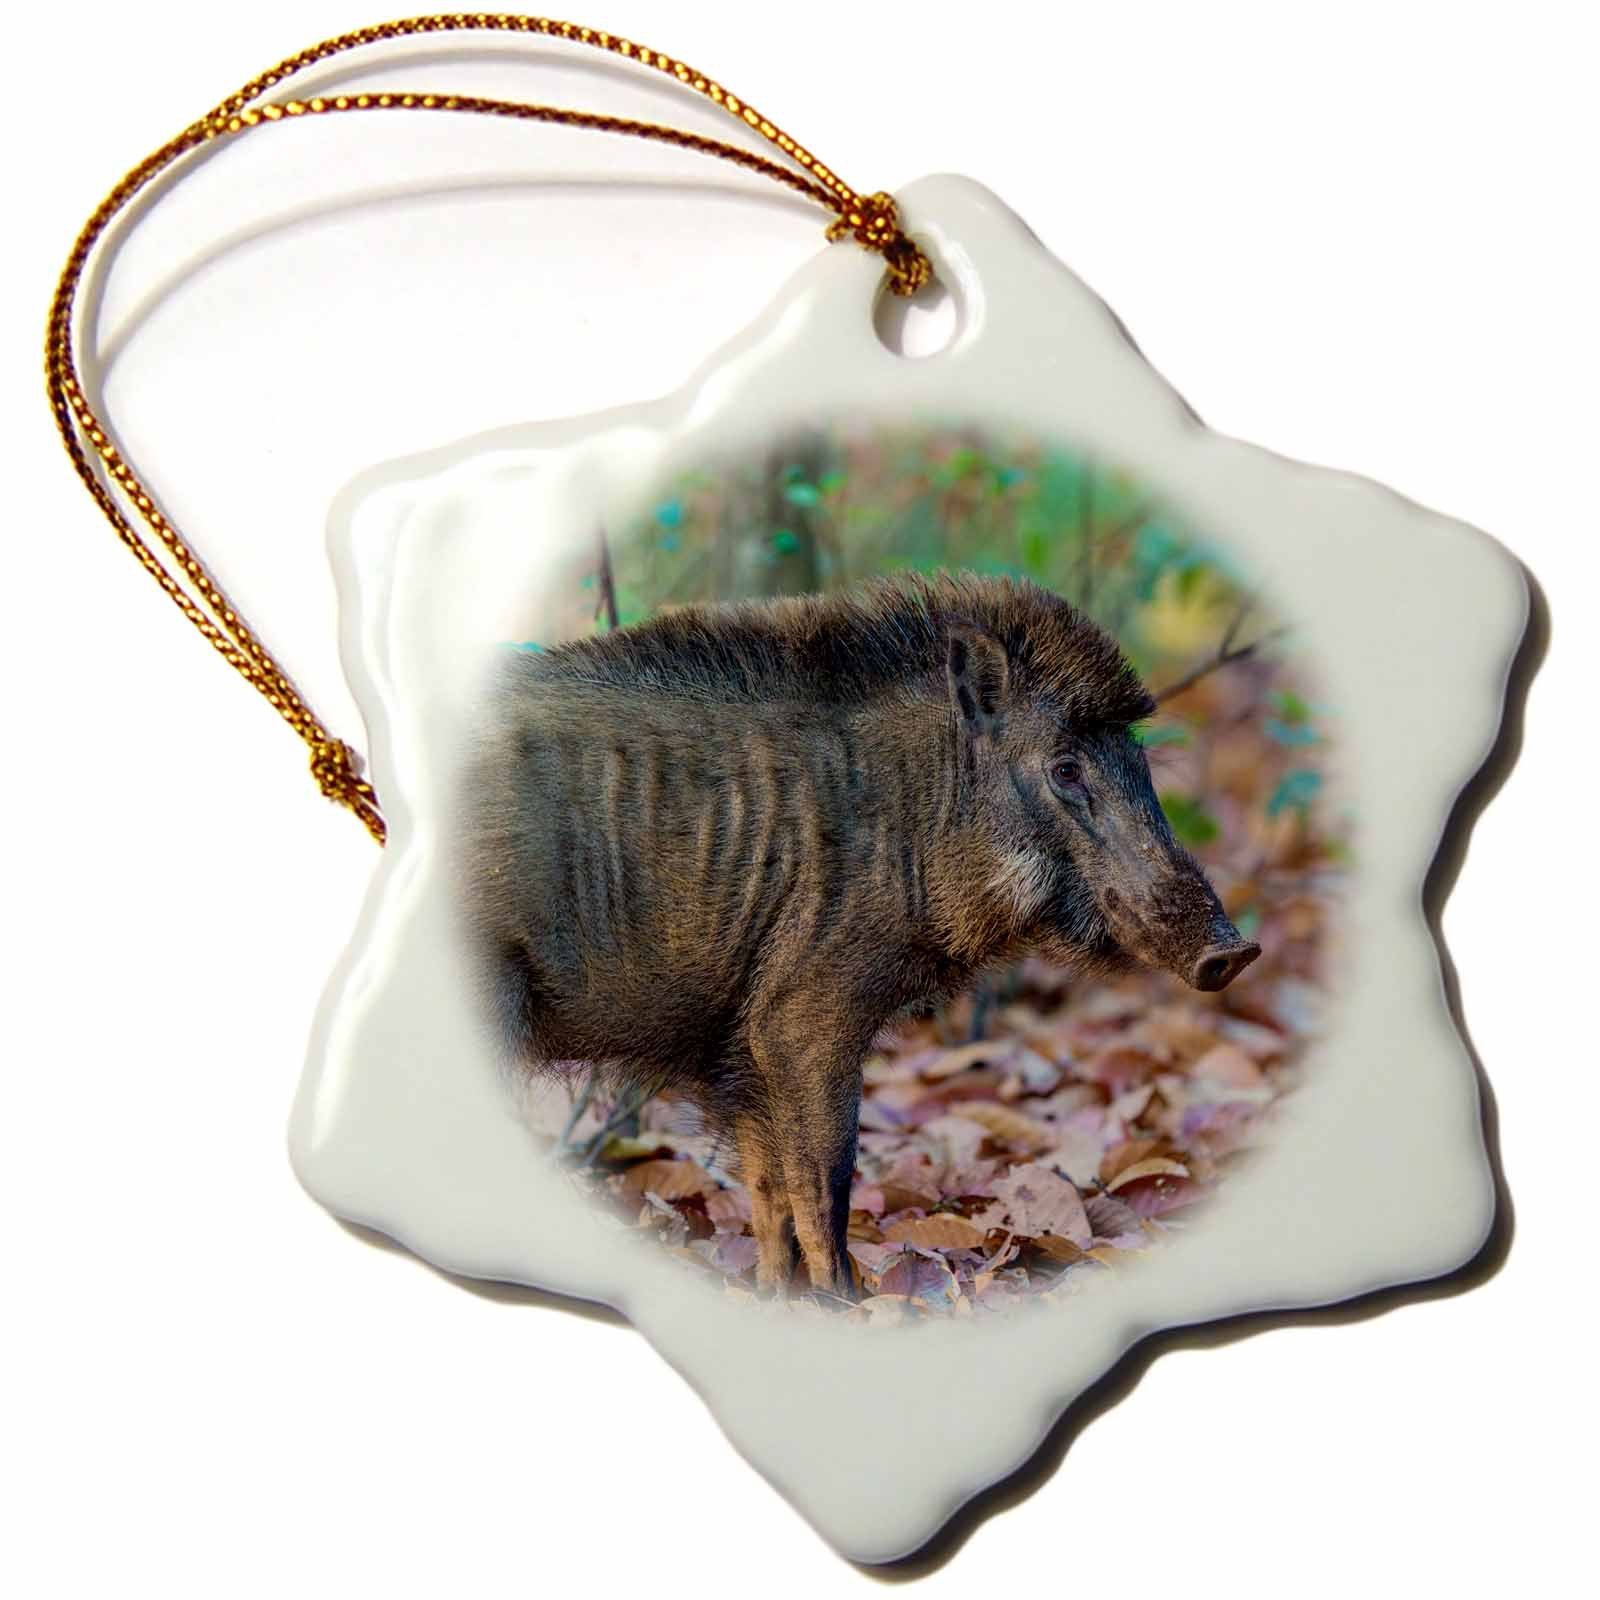 3dRose Danita Delimont - Pigs - India. Indian boar at Kanha Tiger reserve. - 3 inch Snowflake Porcelain Ornament (orn_276778_1)